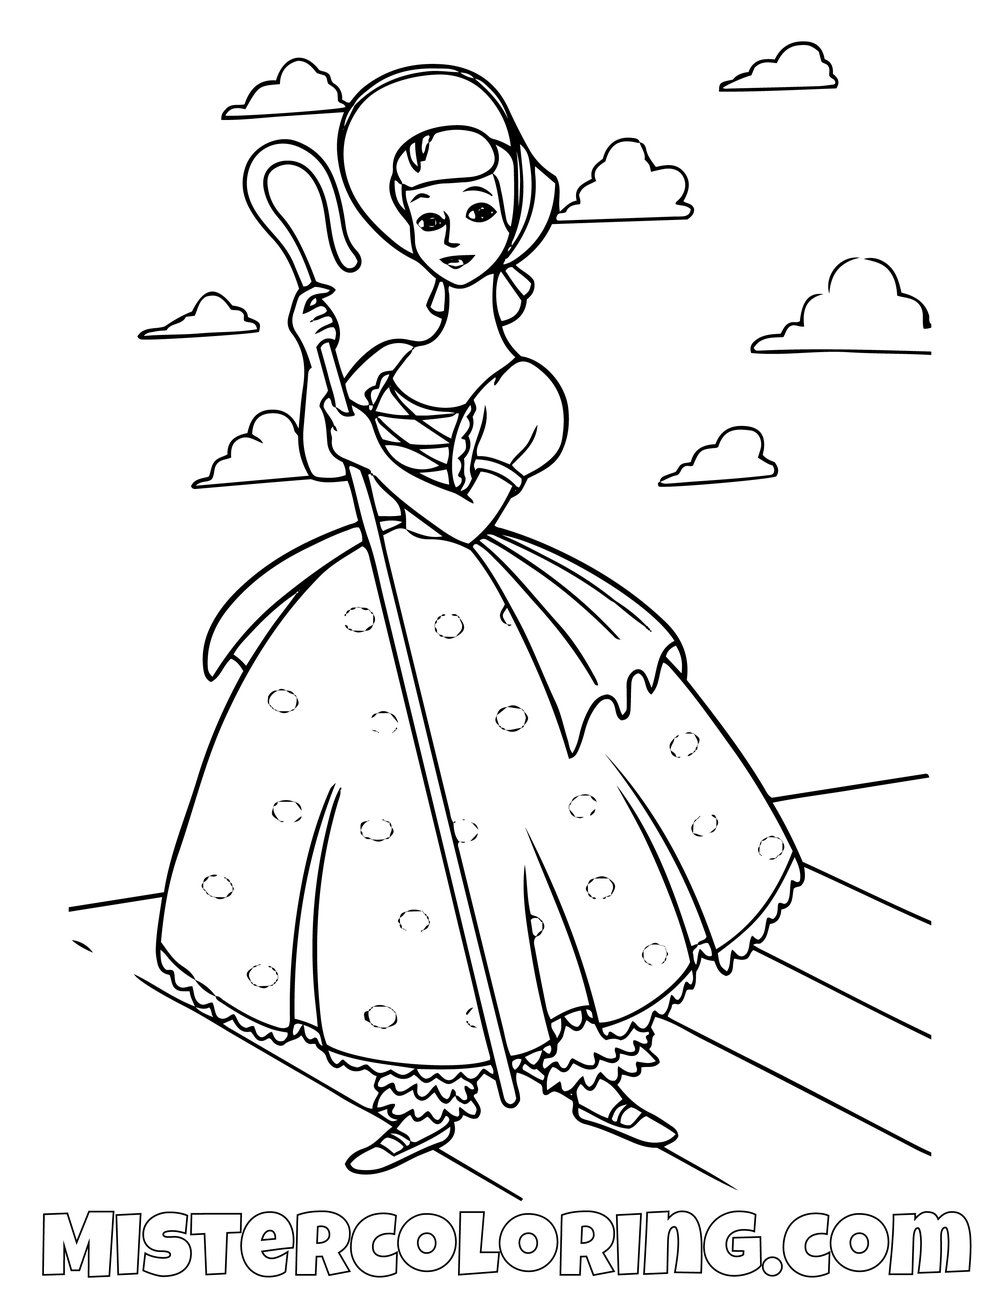 Little Bo Peep Toy Story Coloring Page Toy Story Coloring Pages